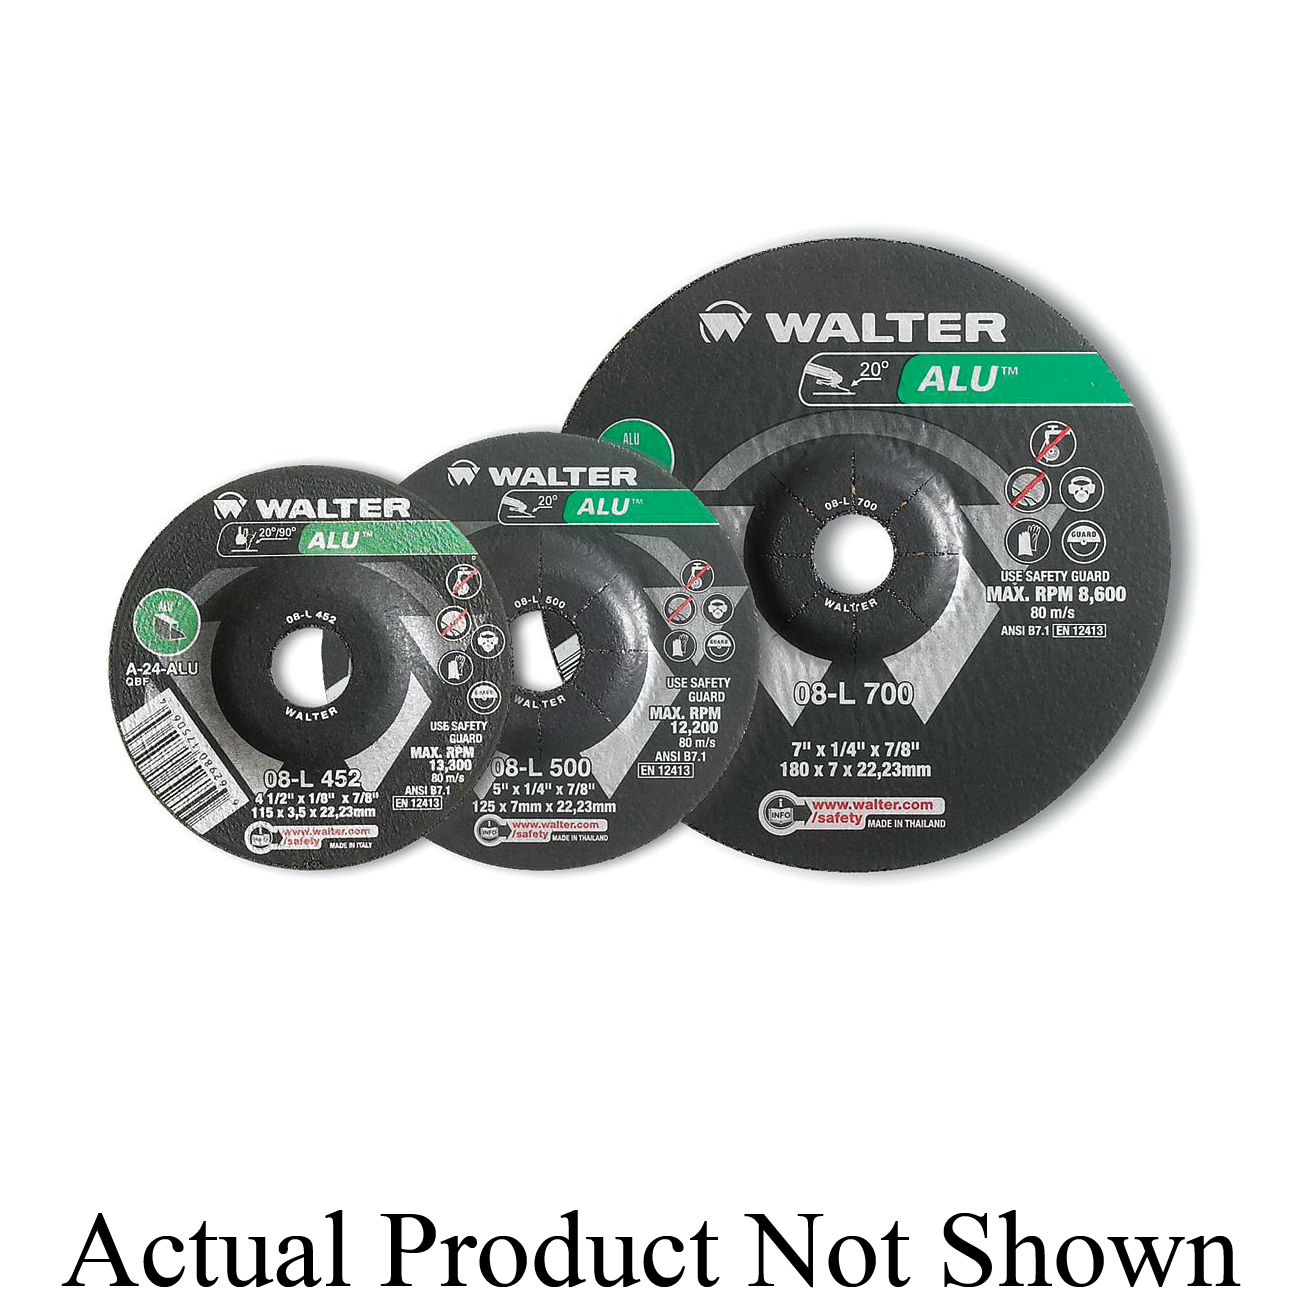 Walter Surface Technologies 08L450 ALU™ Flat Depressed Center Wheel, 4-1/2 in Dia x 1/4 in THK, 7/8 in Center Hole, 24 Grit, Aluminum Oxide Abrasive